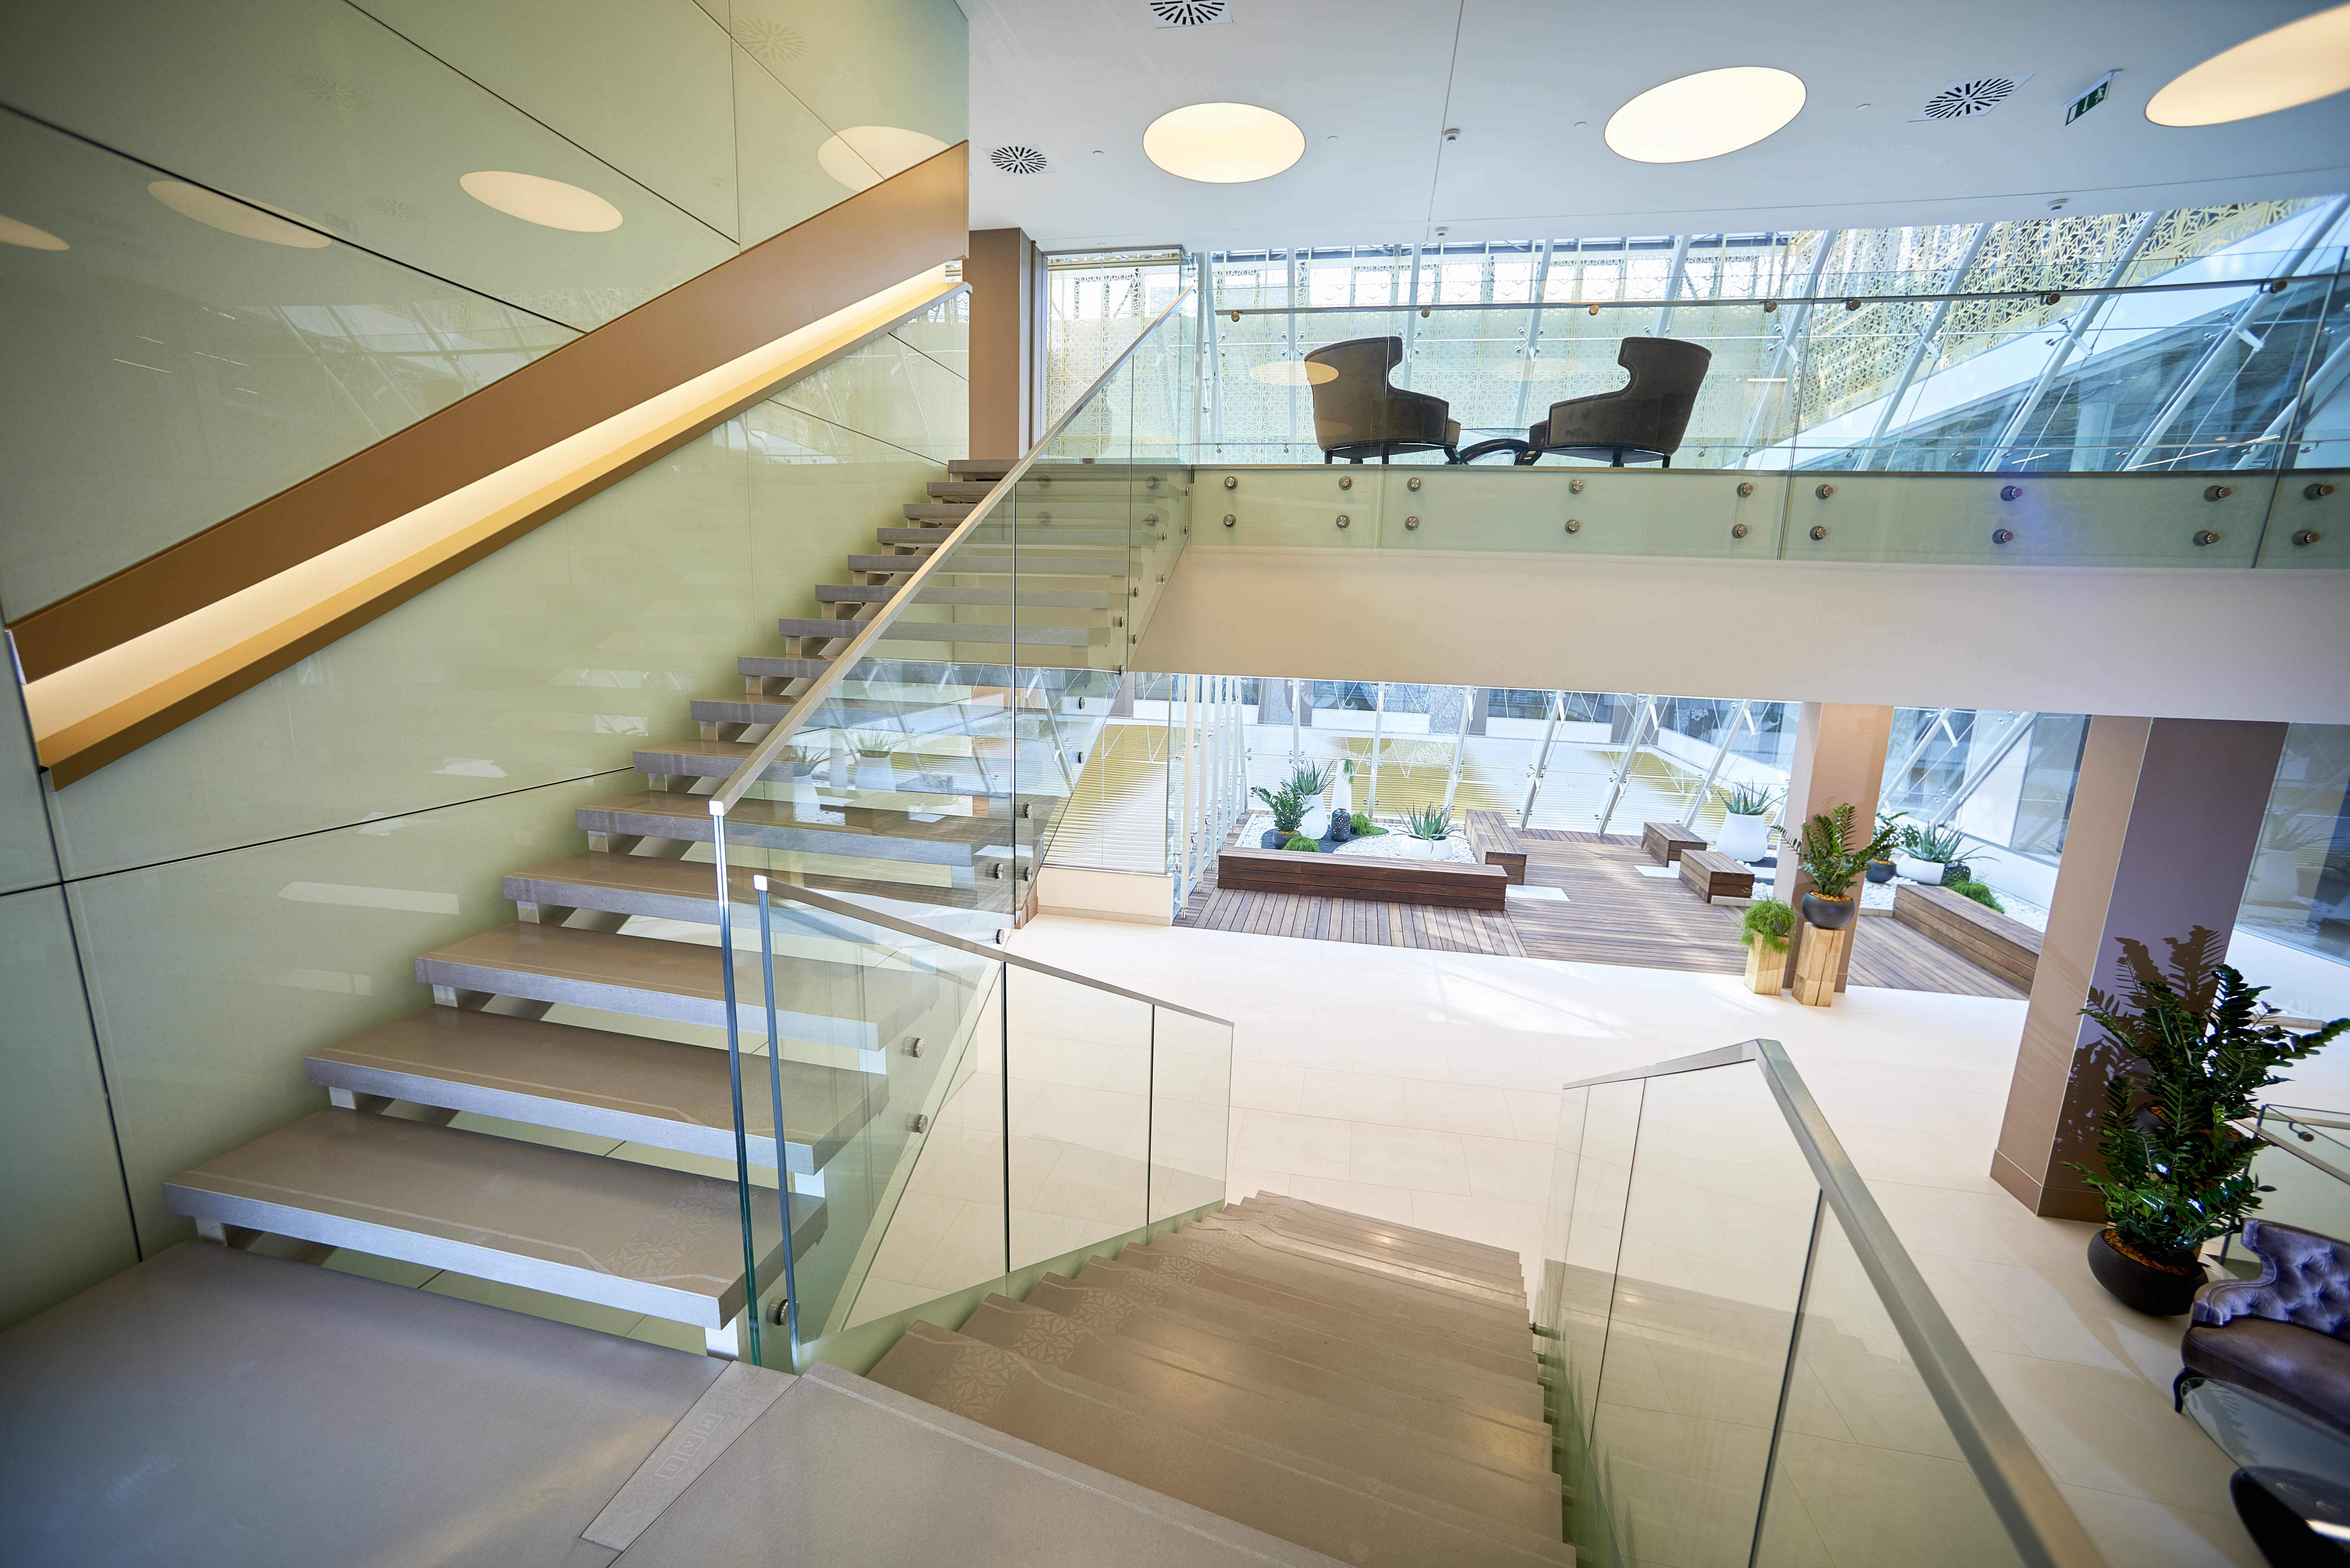 18._new_stairs_linking_the_office_floors_vaci1_budapest_hungary